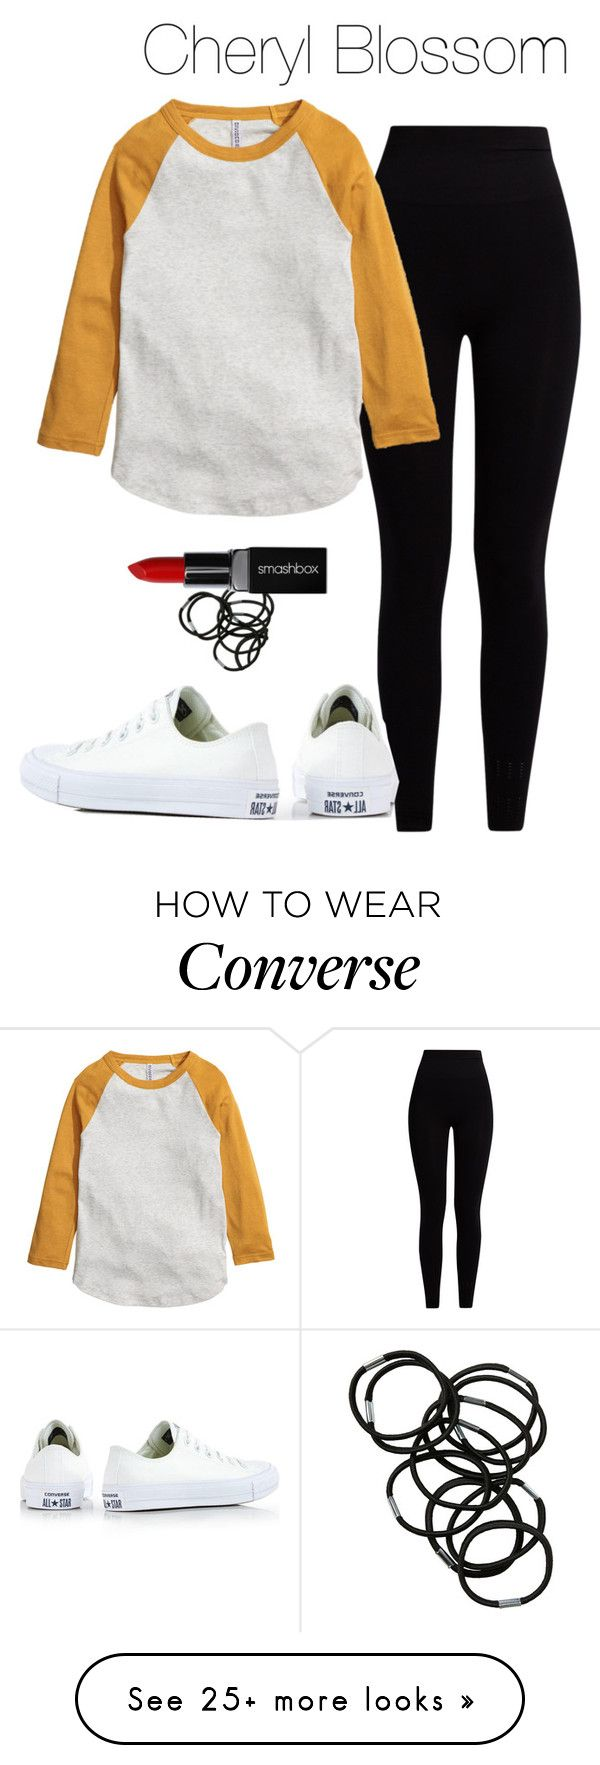 """Cheryl Blossom - Riverdale"" by shadyannon on Polyvore featuring Pepper & Mayne, Monki, Converse and Smashbox"